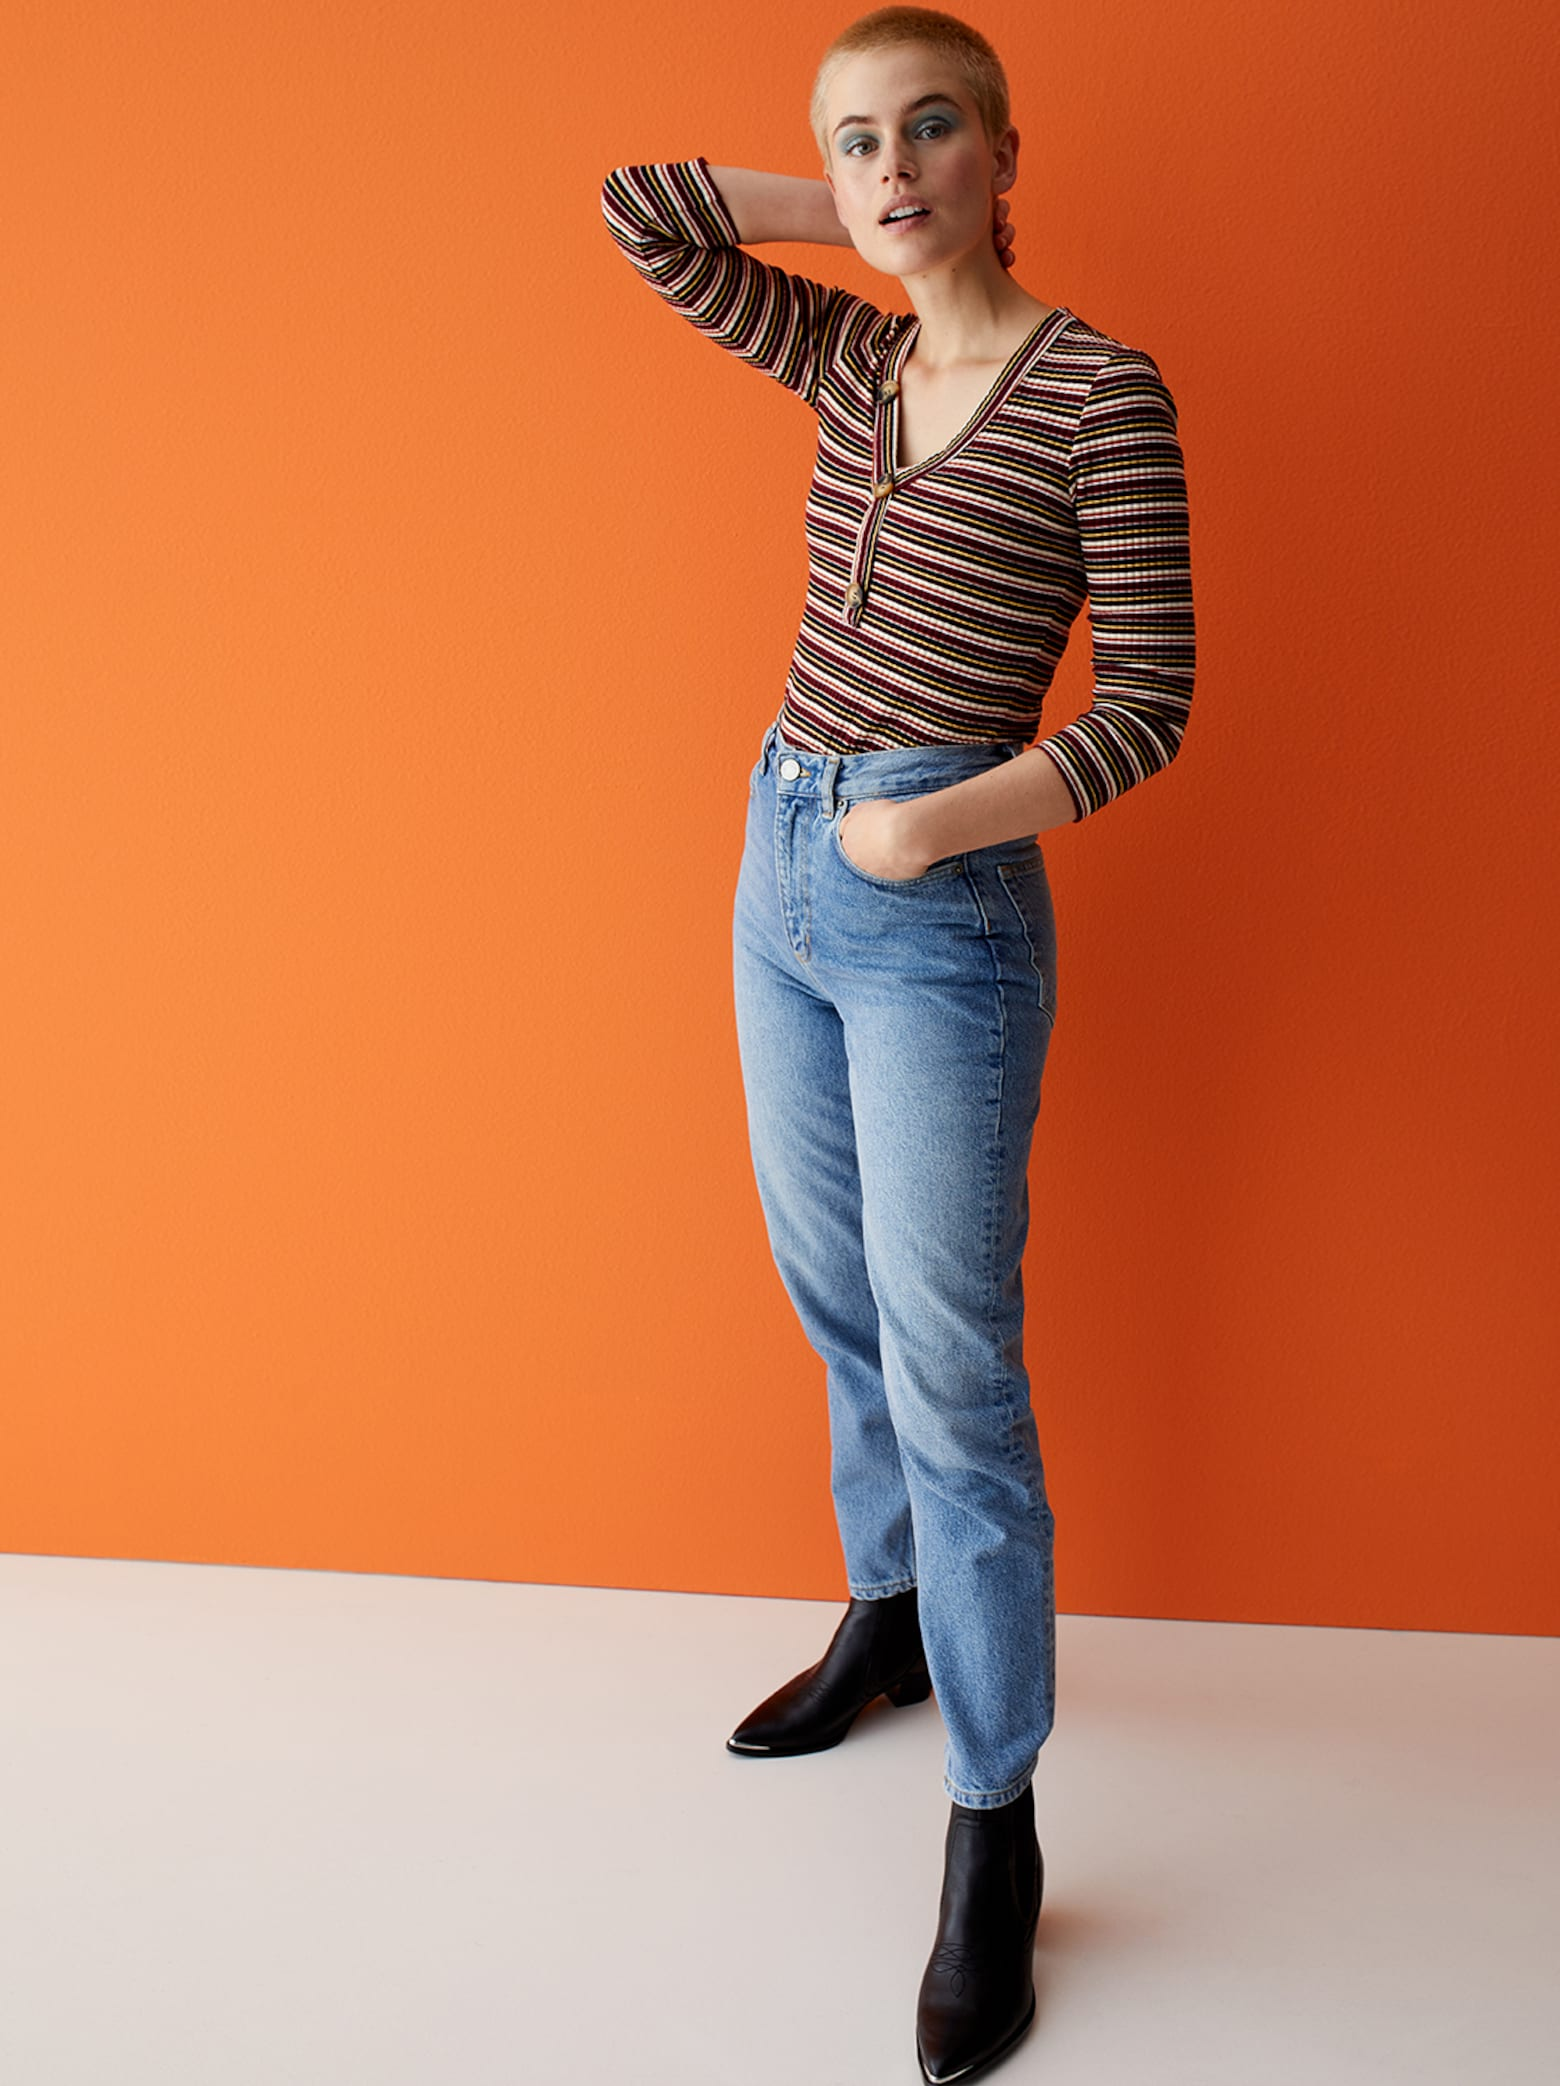 Cajsa - Stripes Outfit